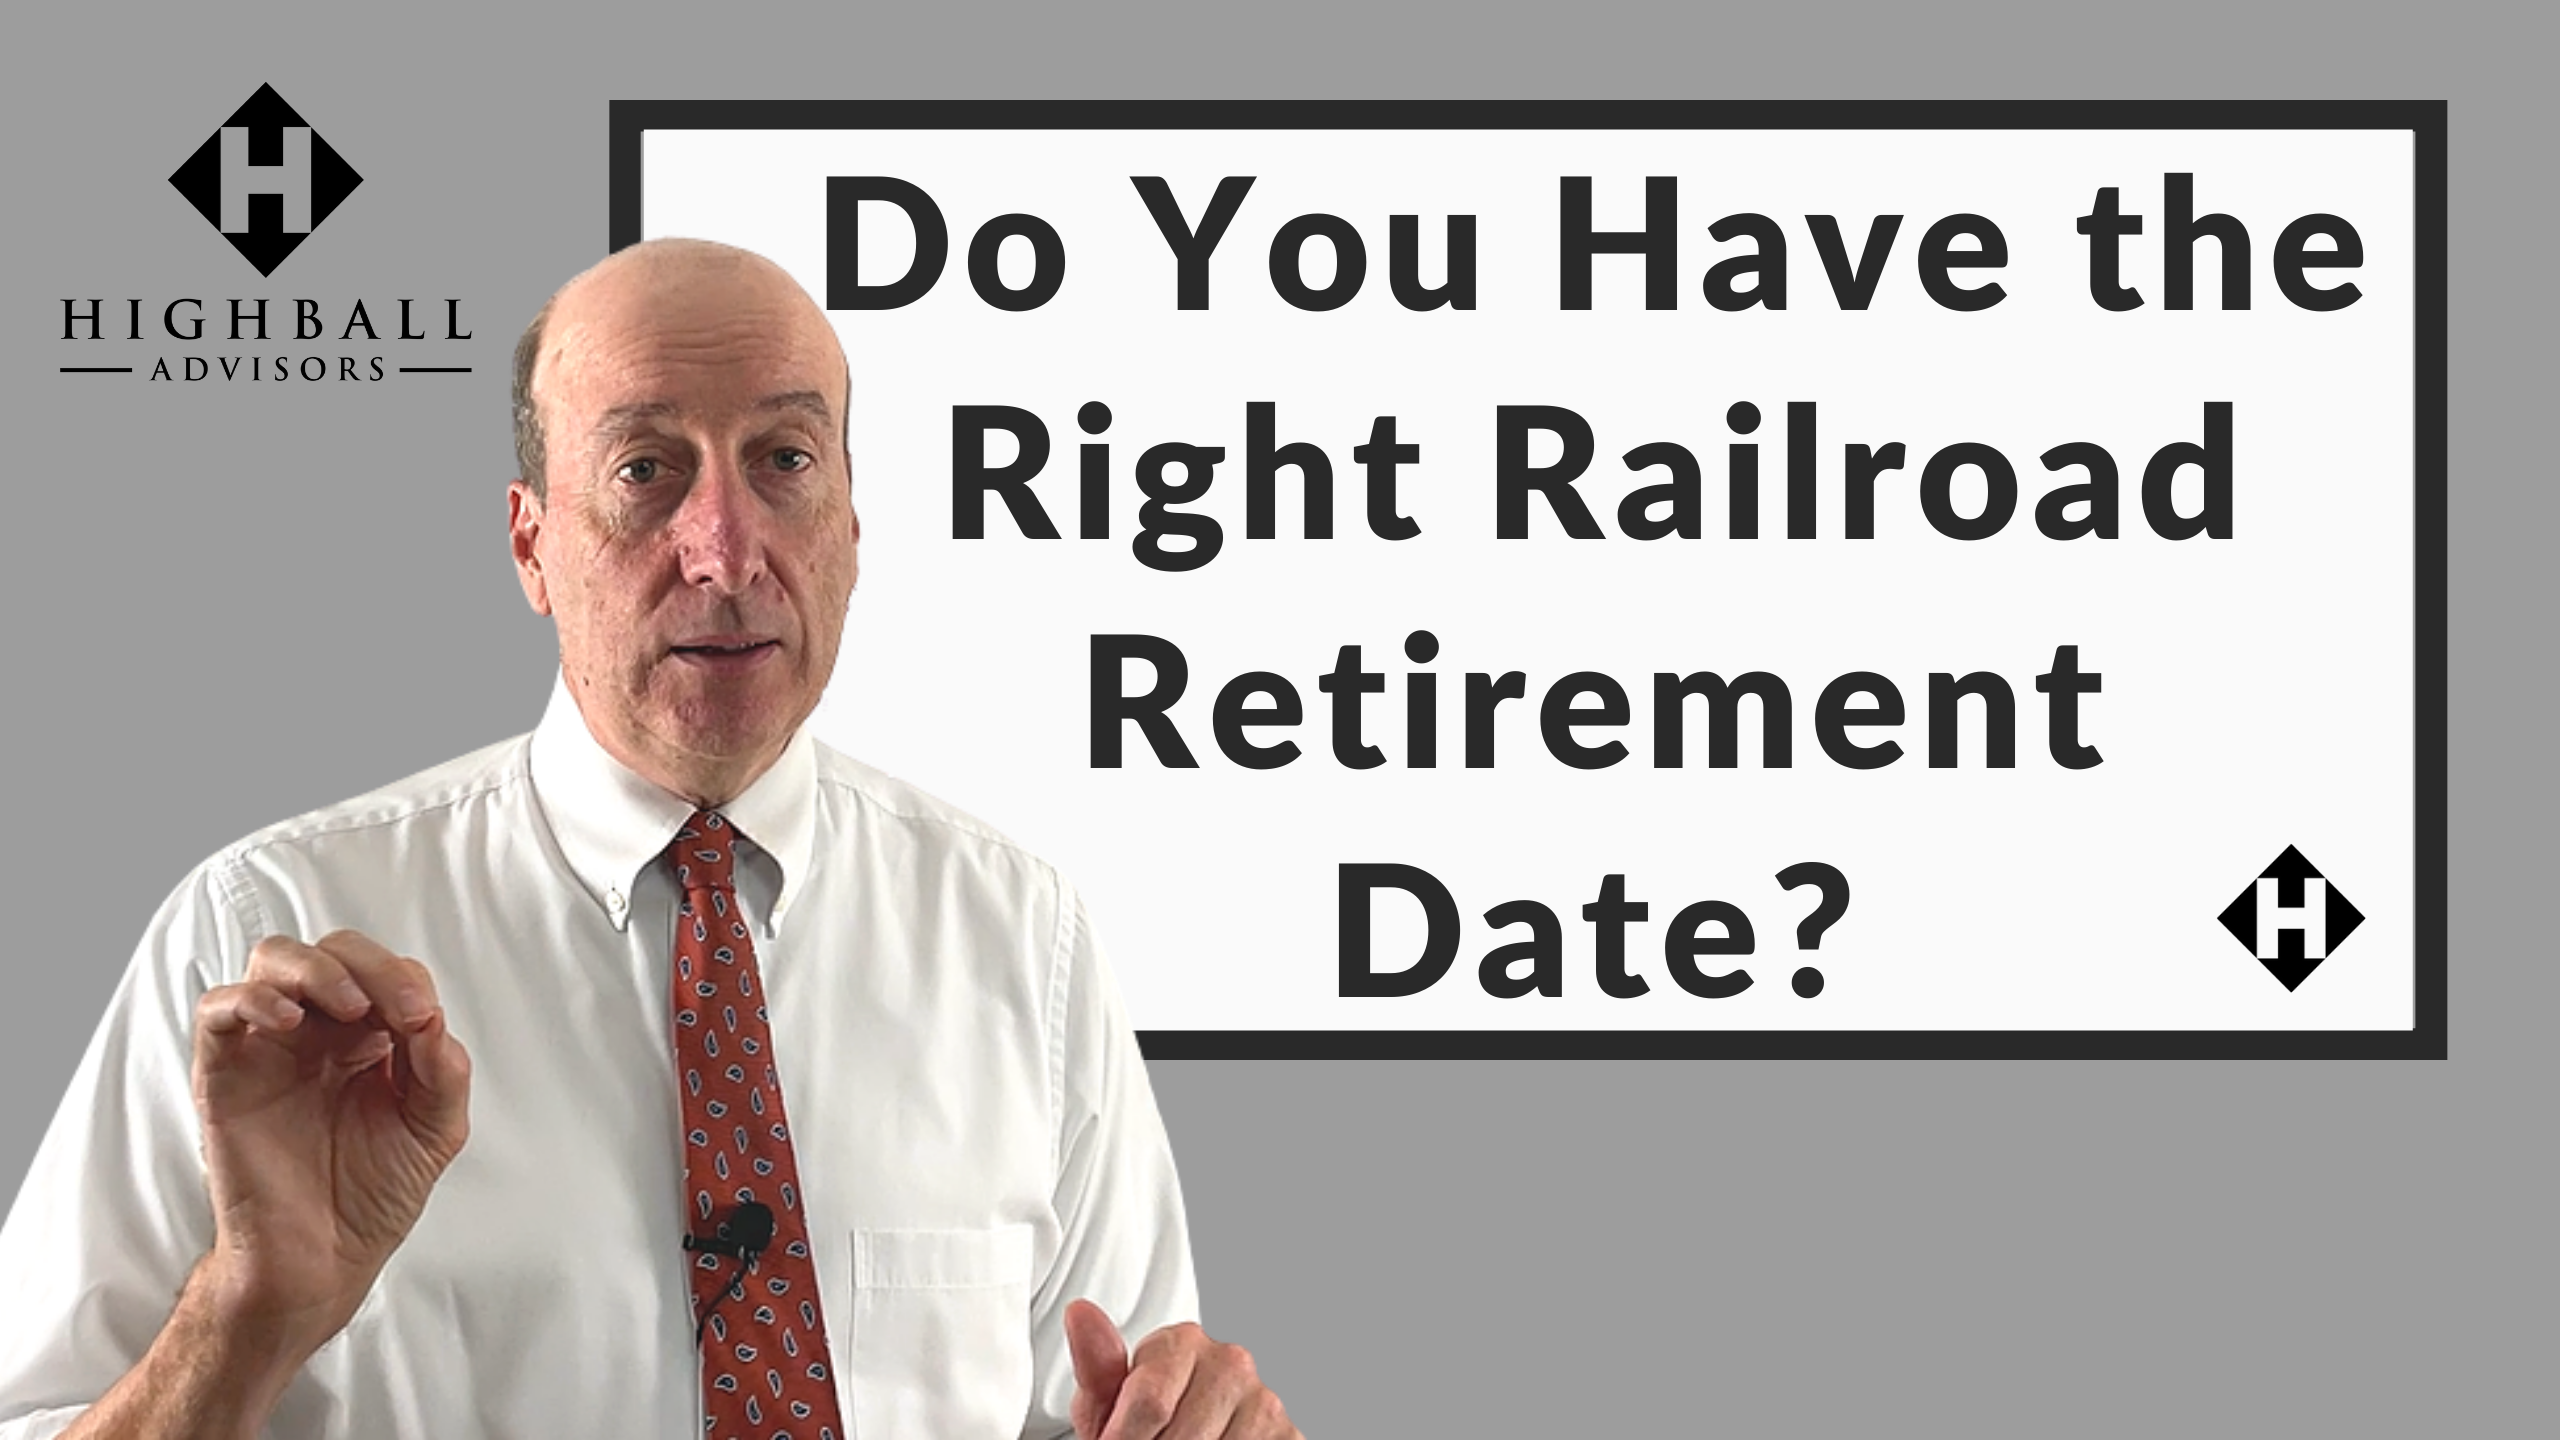 Do You Have the Right Railroad Retirement Date? Thumbnail